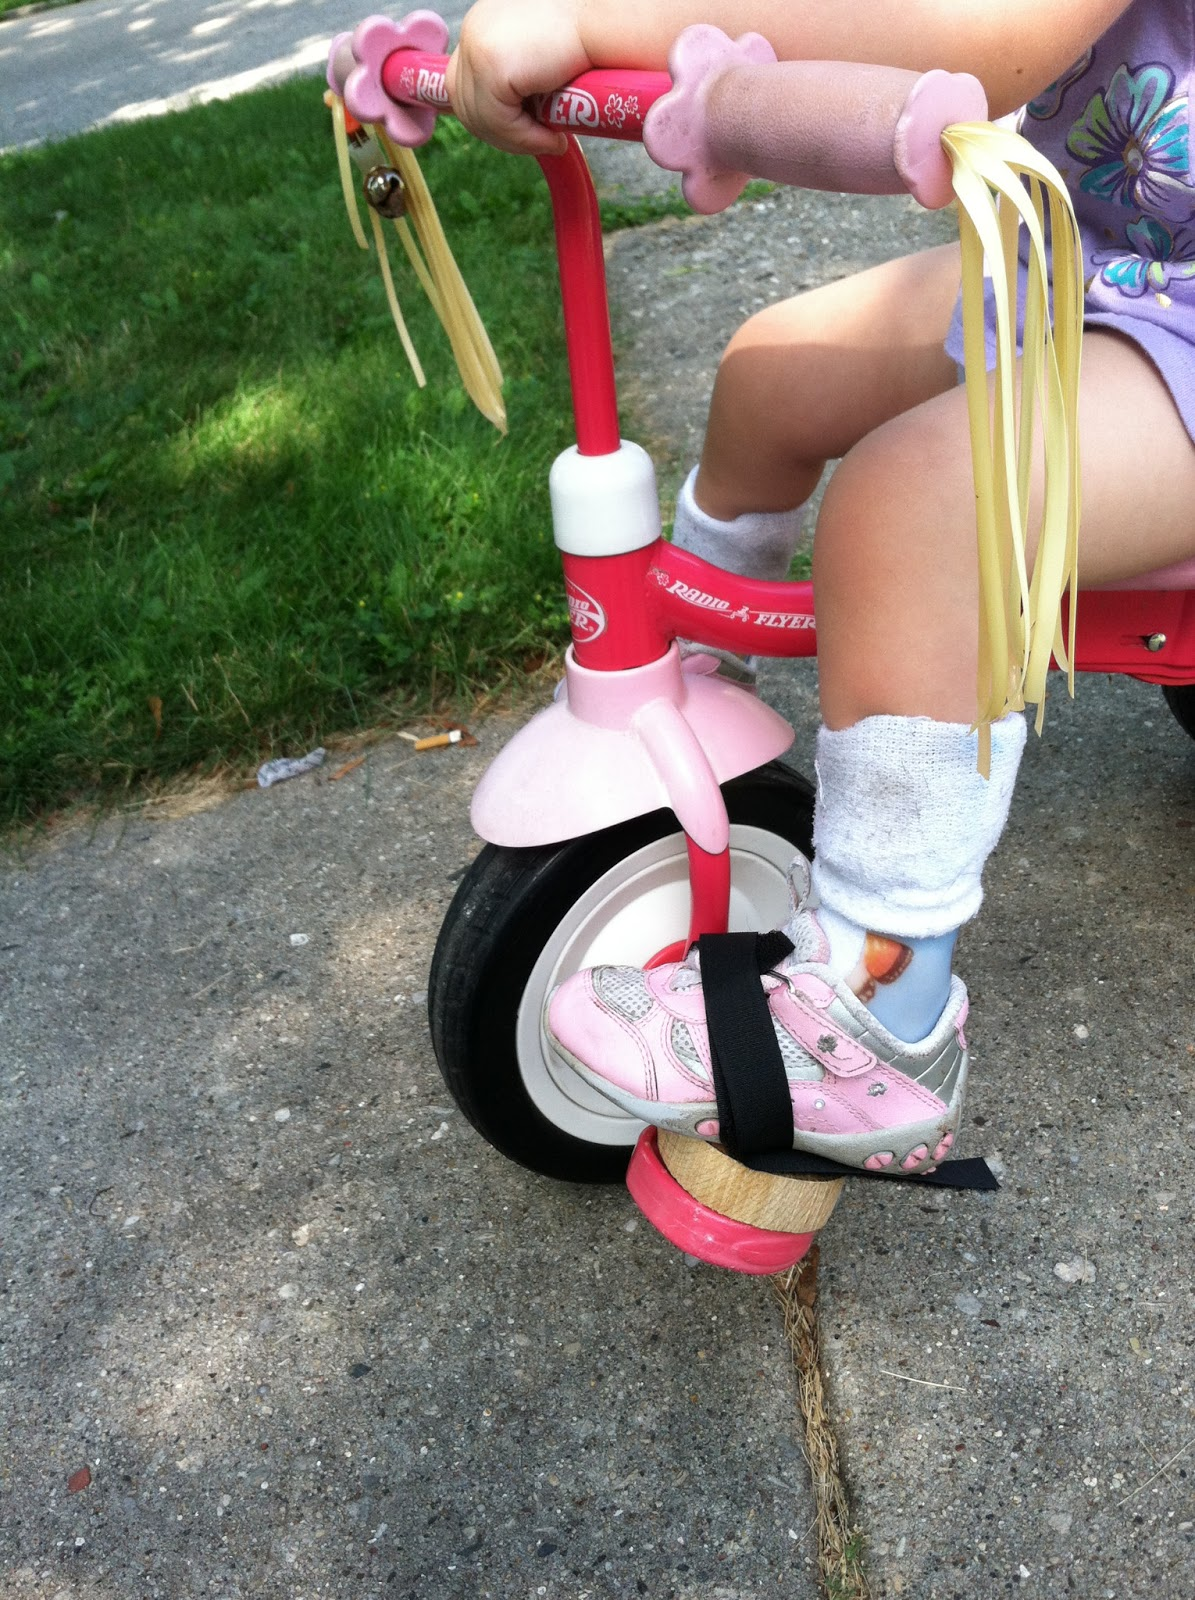 Rachel S Journey With Spina Bifida Foot Pedal Riser For